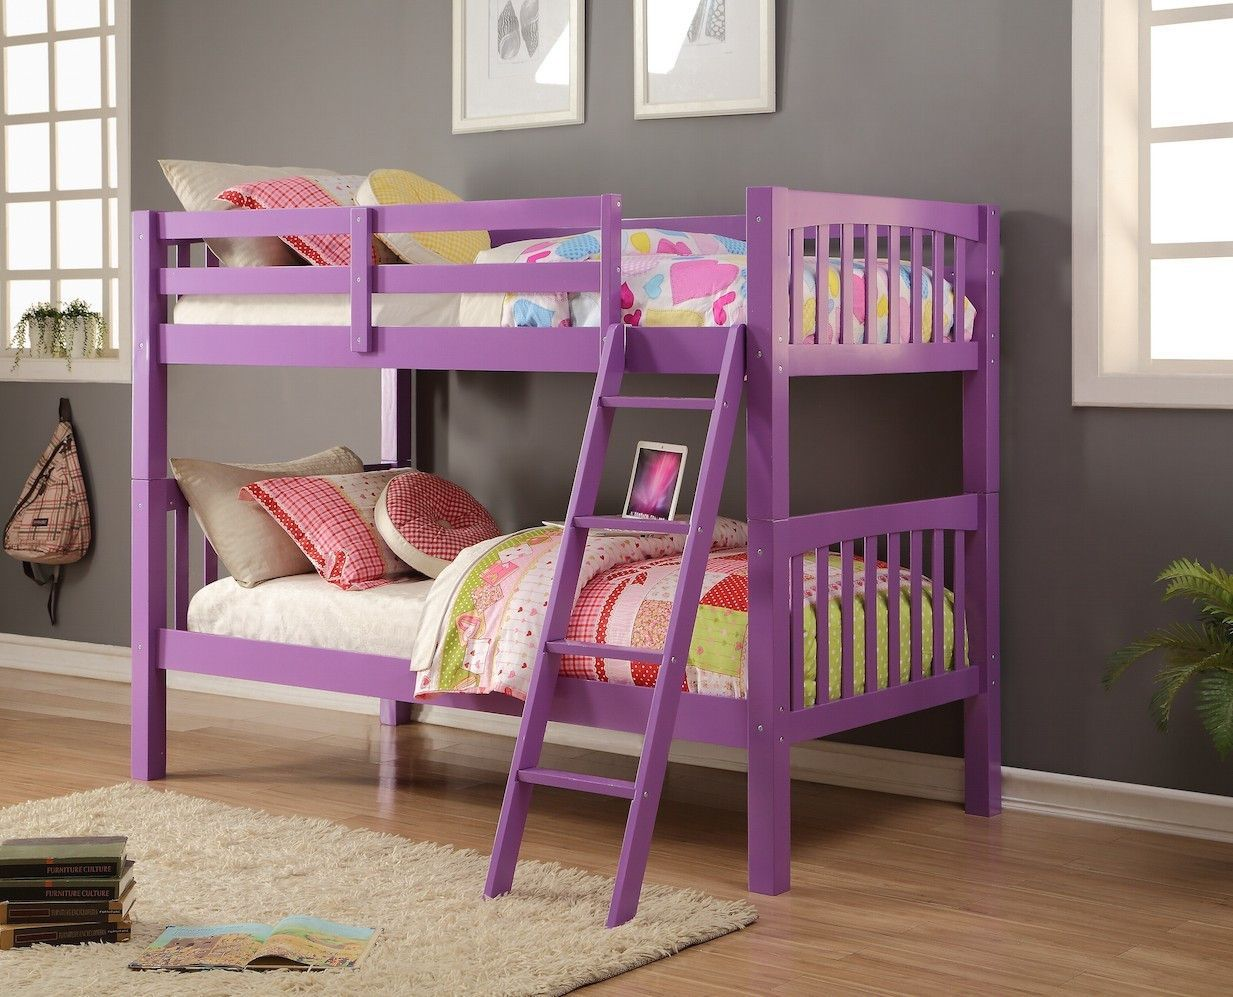 Purple Bunk Beds Online Discount Shop For Electronics Apparel Toys Books Games Computers Shoes Jewelry Watches Baby Products Sports Outdoors Office Products Bed Bath Furniture Tools Hardware Automotive Parts